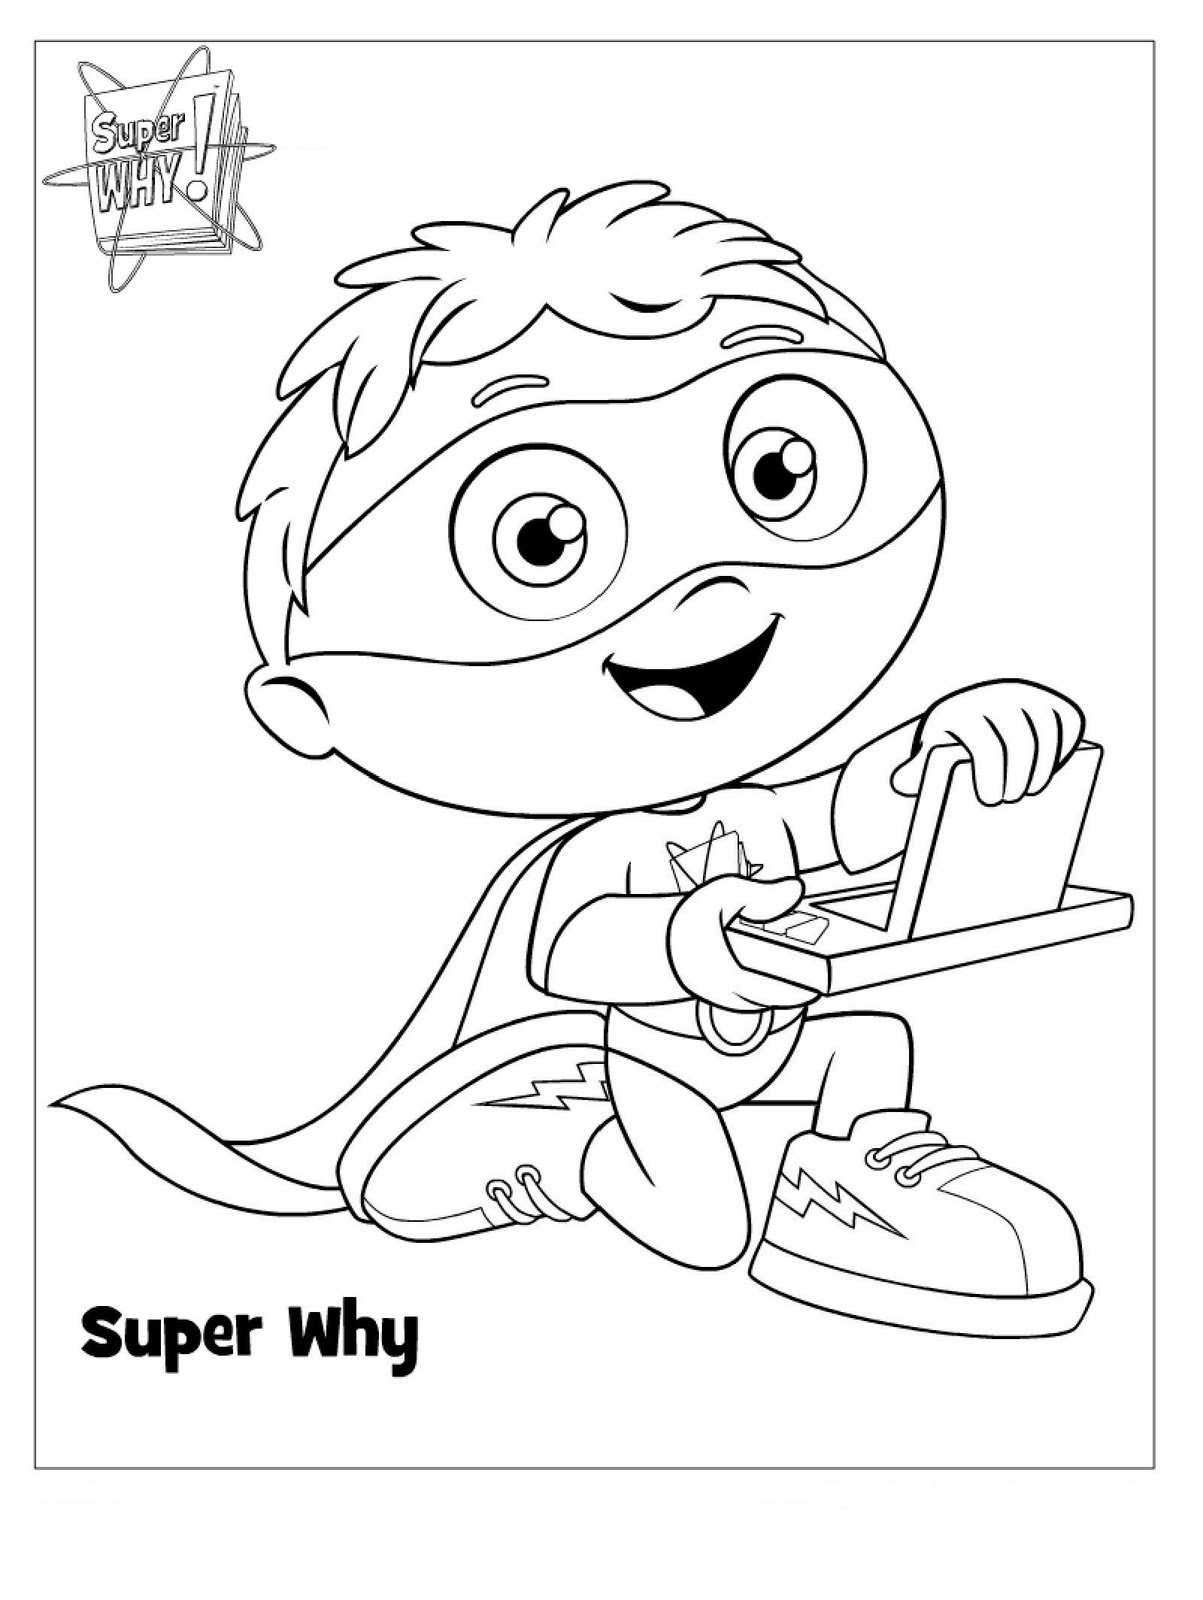 super why printable coloring pages - photo#2